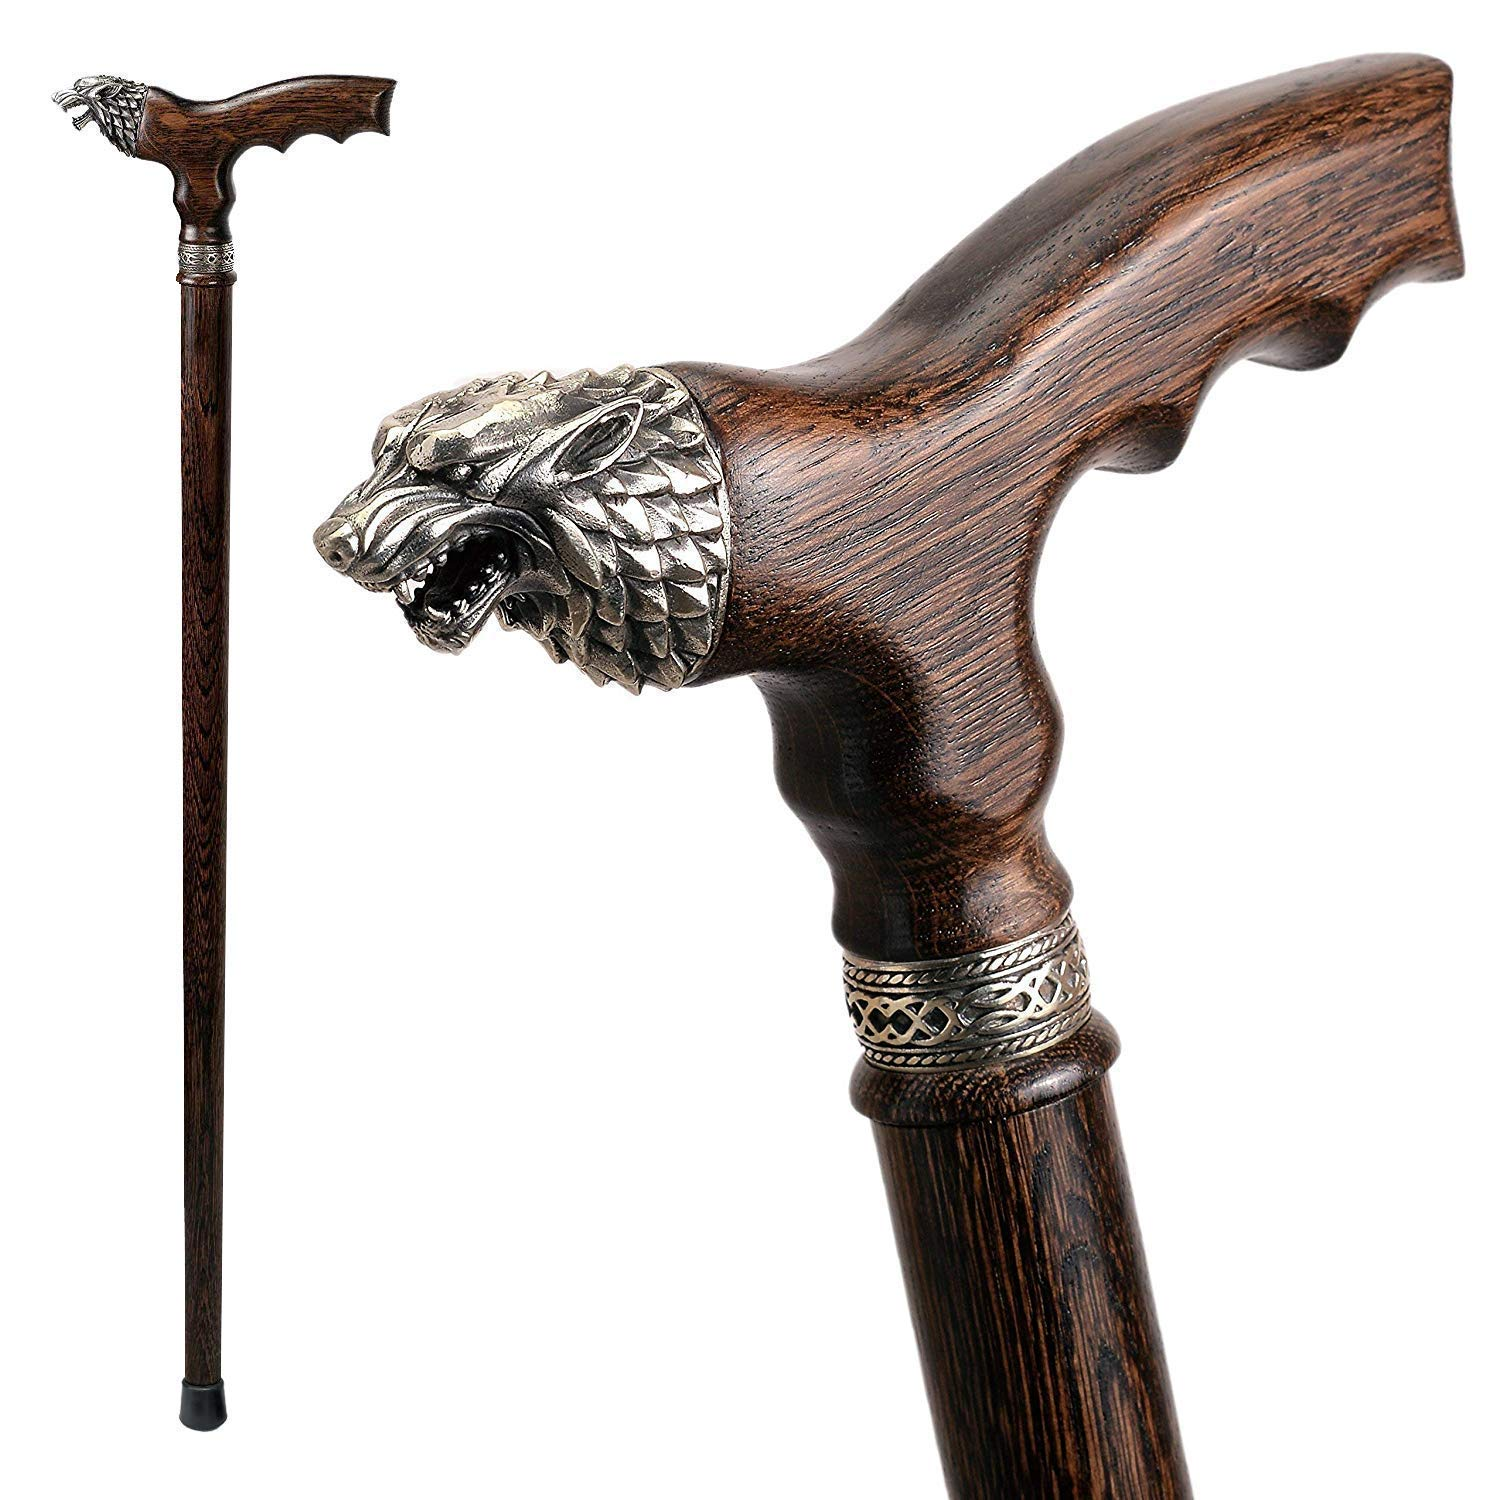 Fancy Walking Canes for Men - Direwolf - Fashionable Handcrafted Wooden Canes and Walking Sticks - Wolf Head Cane by Asterom